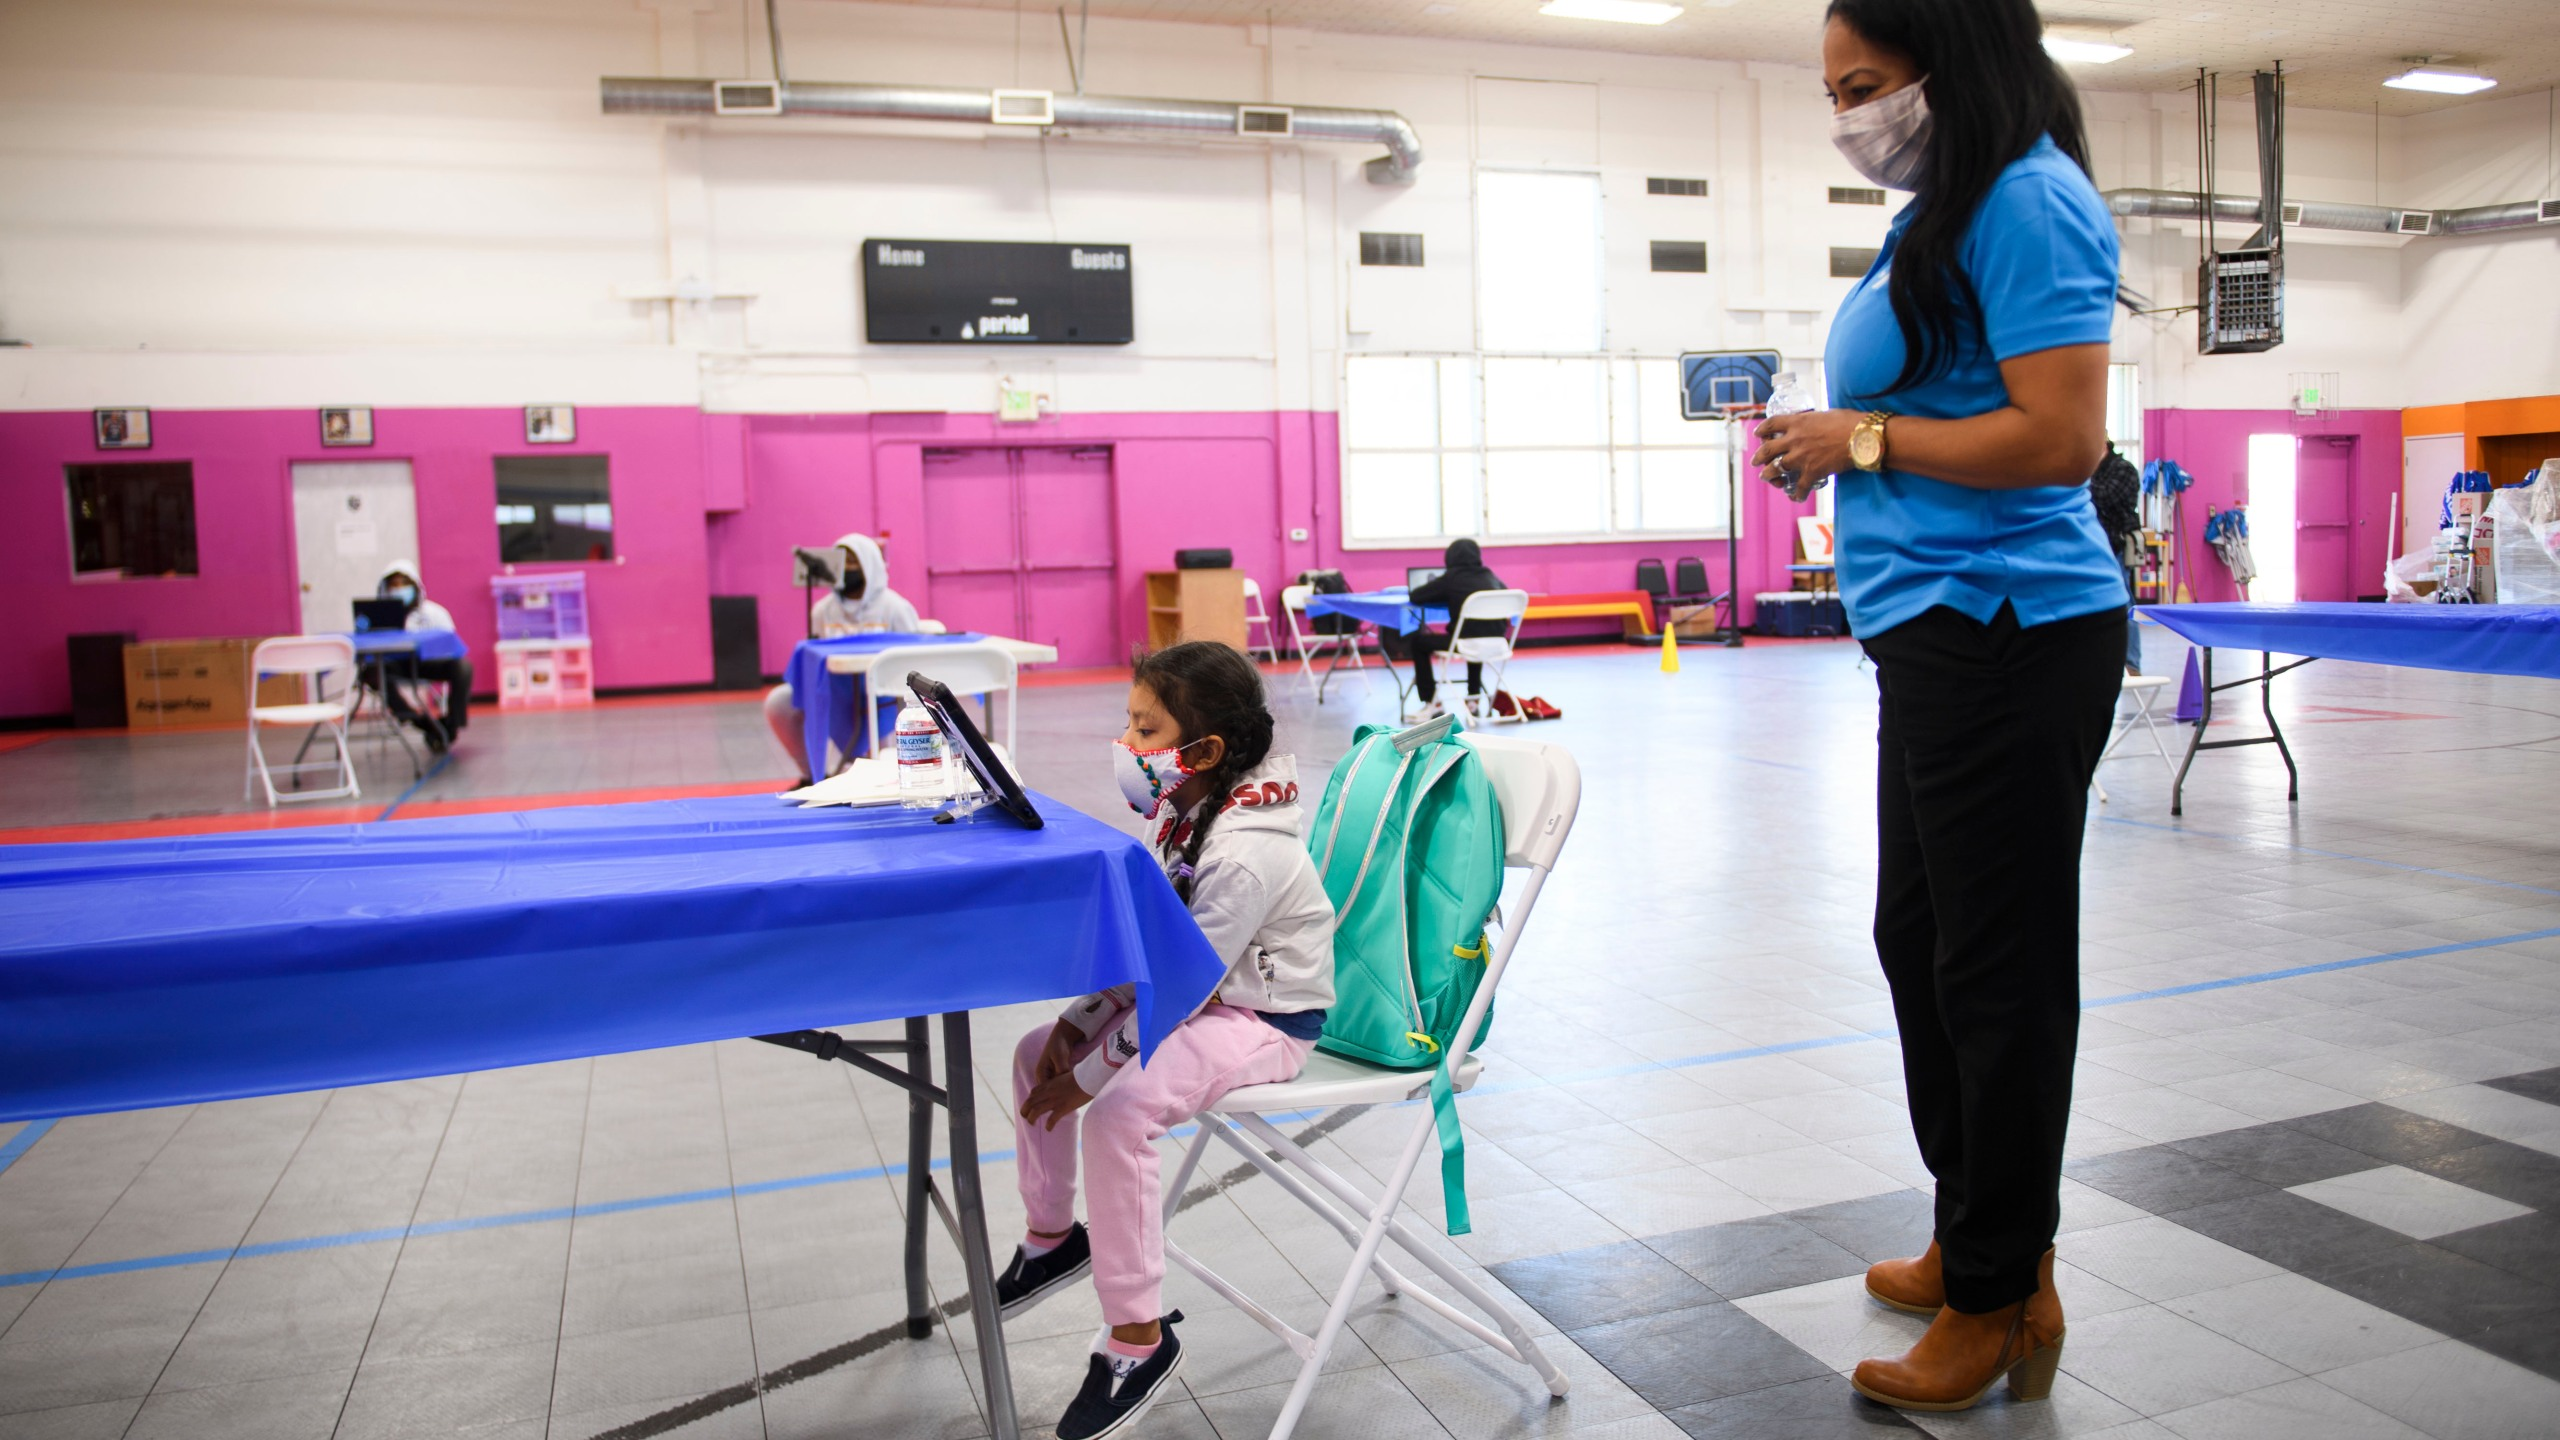 A YMCA staff member assists a child as they attend online classes at a learning hub inside the Crenshaw Family YMCA during the Covid-19 pandemic on February 17, 2021 in Los Angeles, California. (PATRICK T. FALLON/AFP via Getty Images)